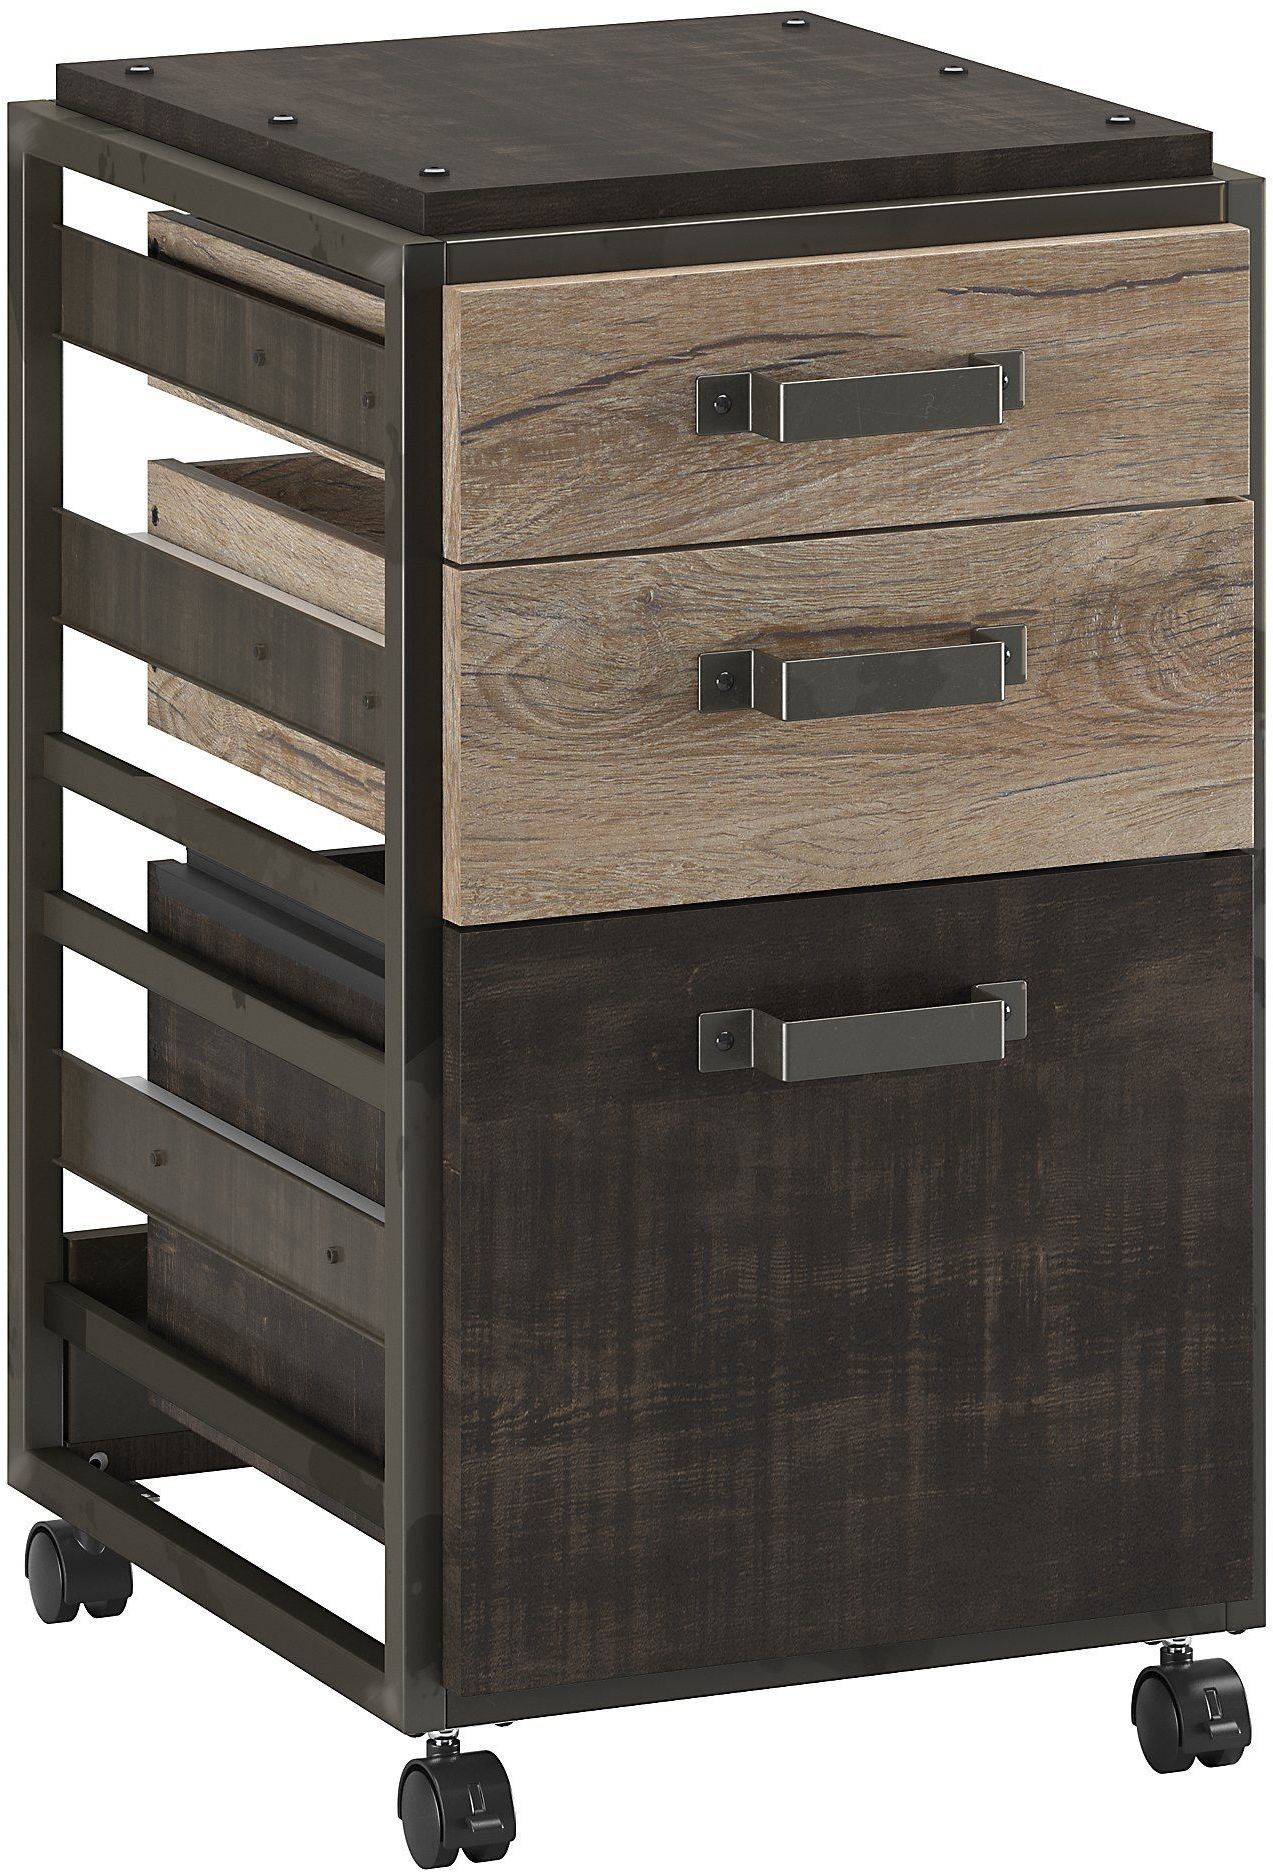 Refinery rustic gray 3 drawer mobile file cabinet from for Mobile furniture